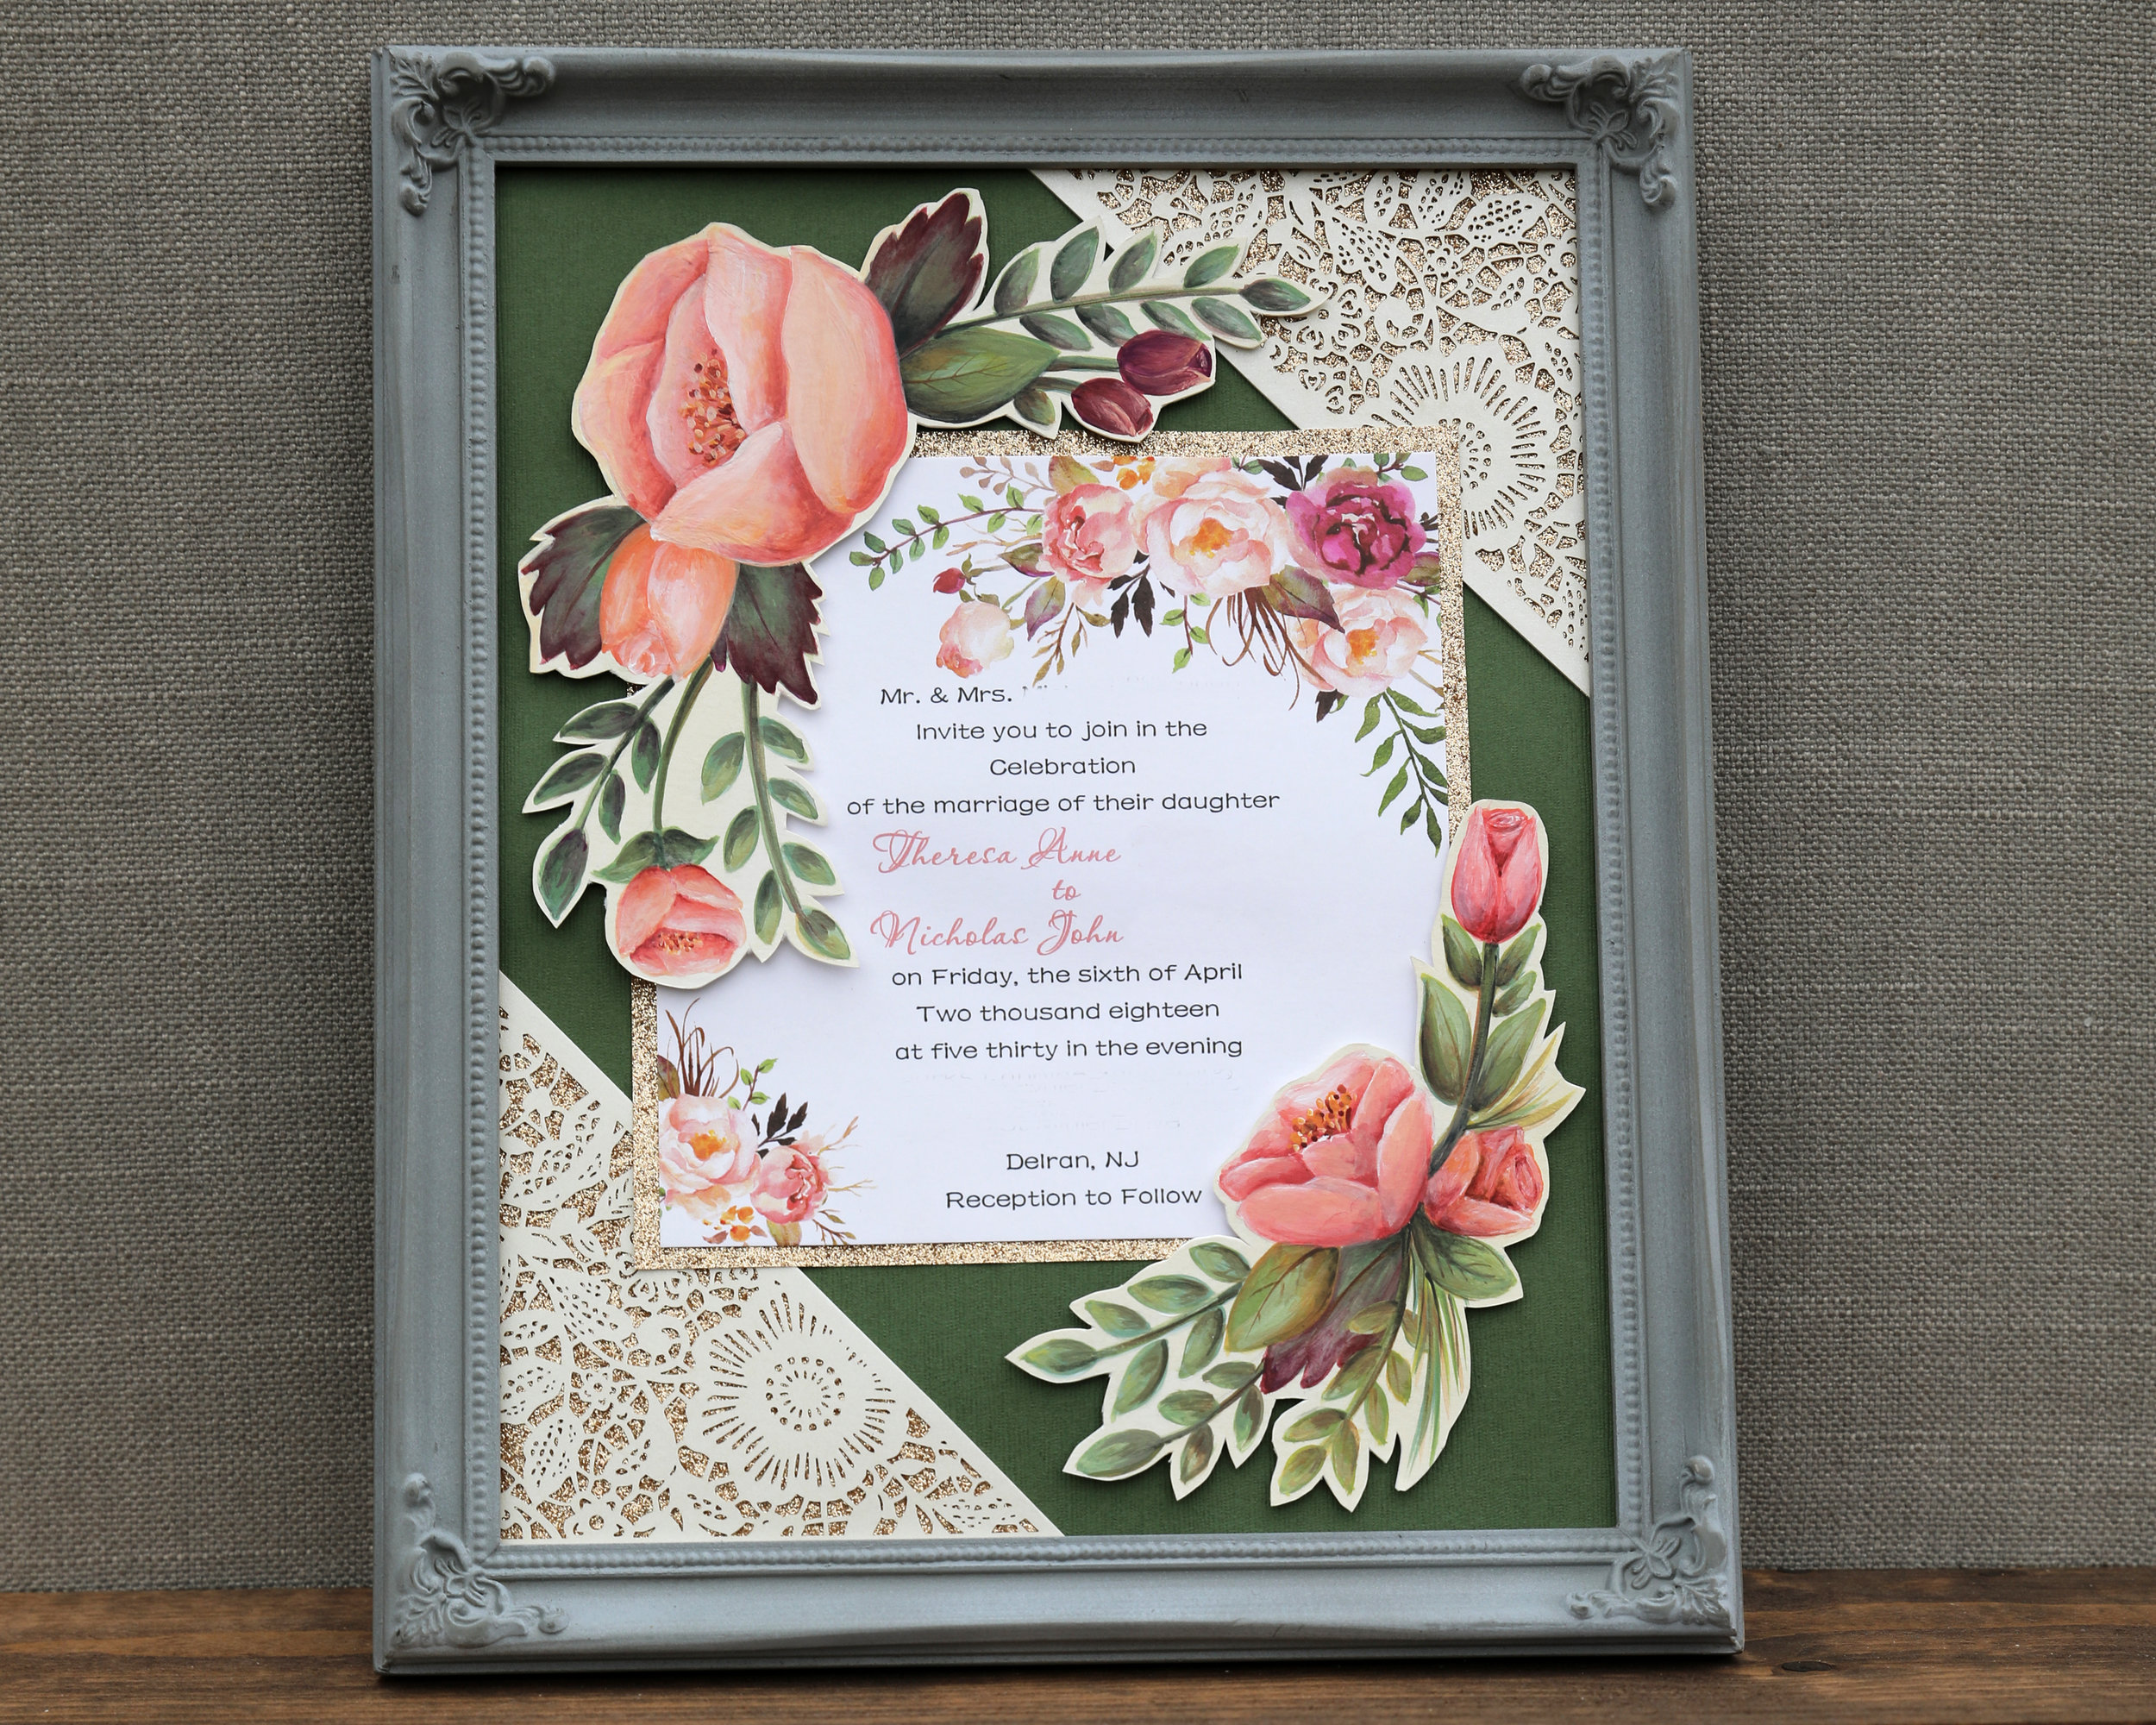 _floral invitation keepsake8.jpg